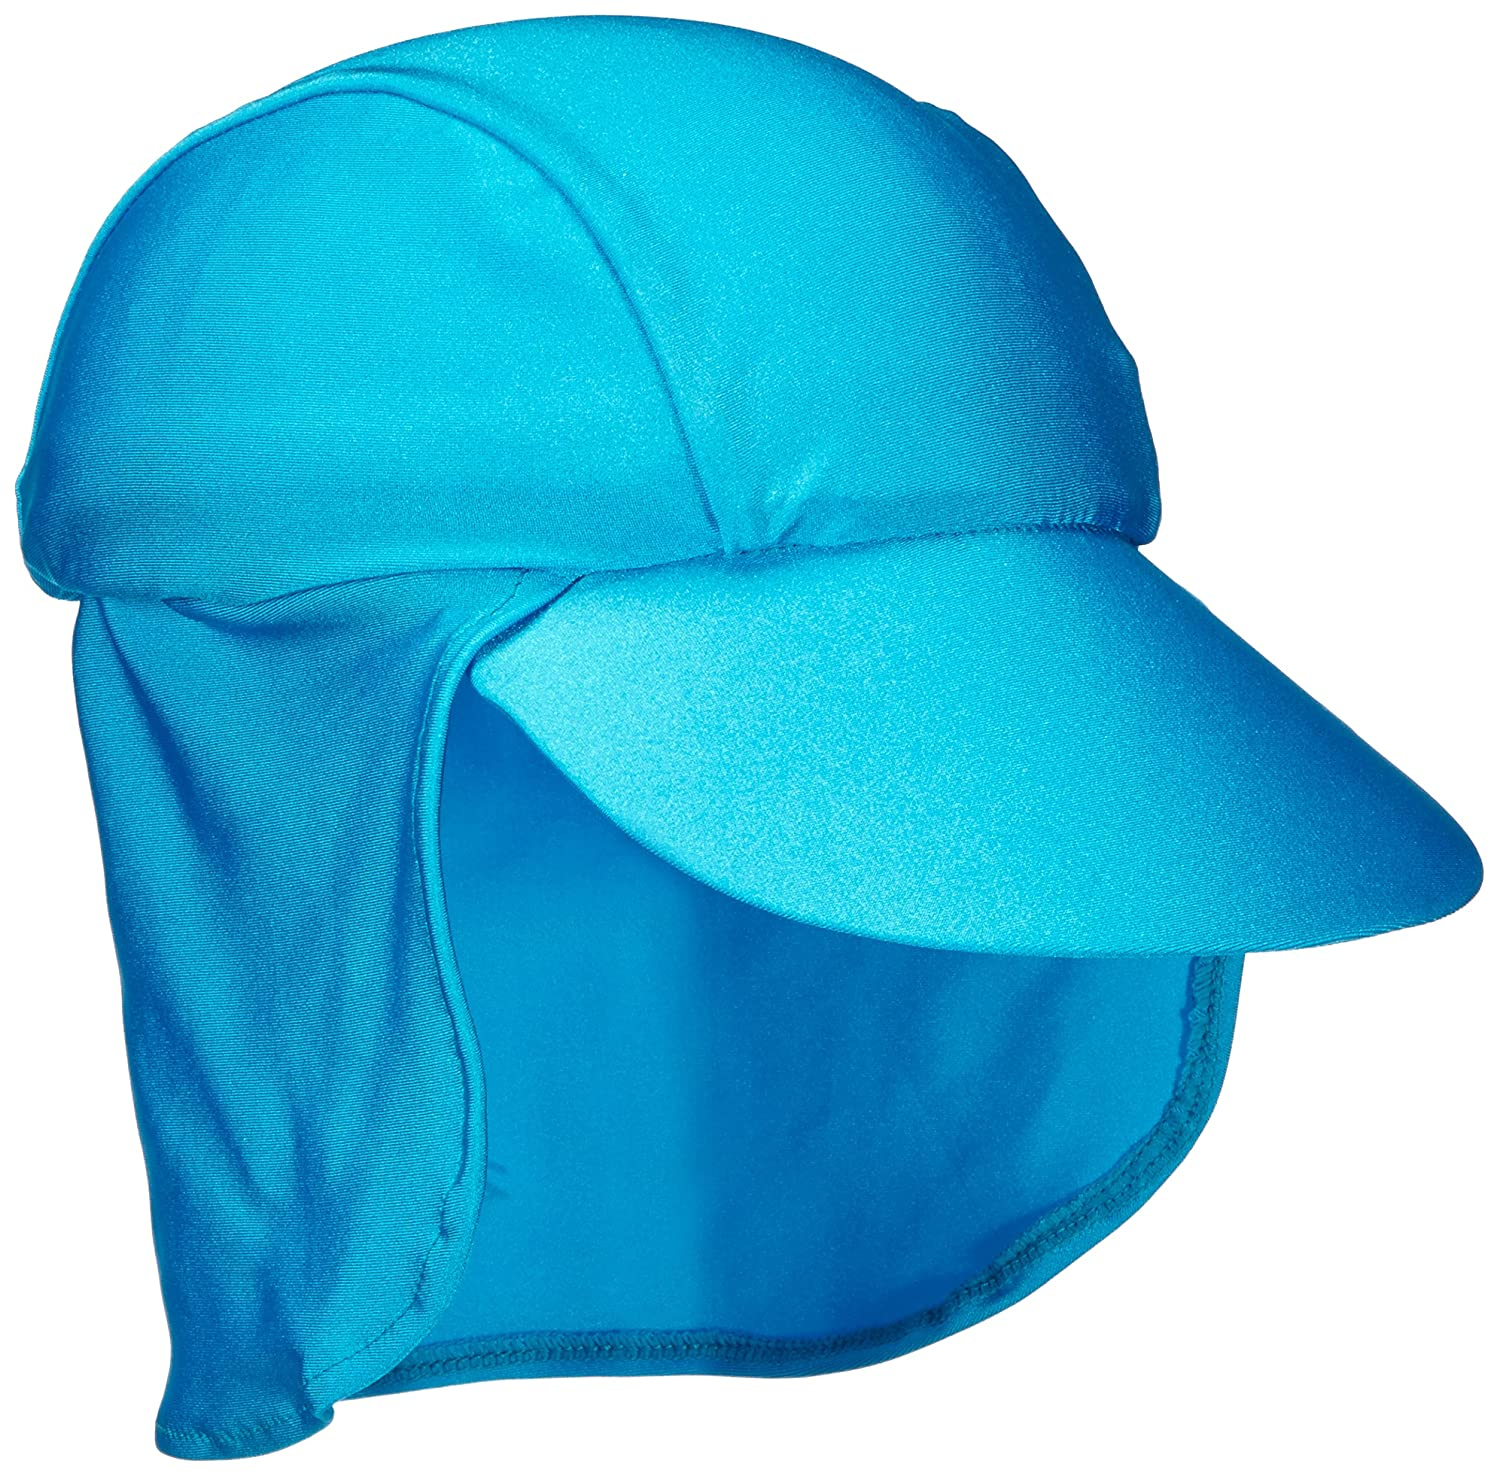 Zunblock UV-Hat with Neck Protection, Turquoise, Small 5010531